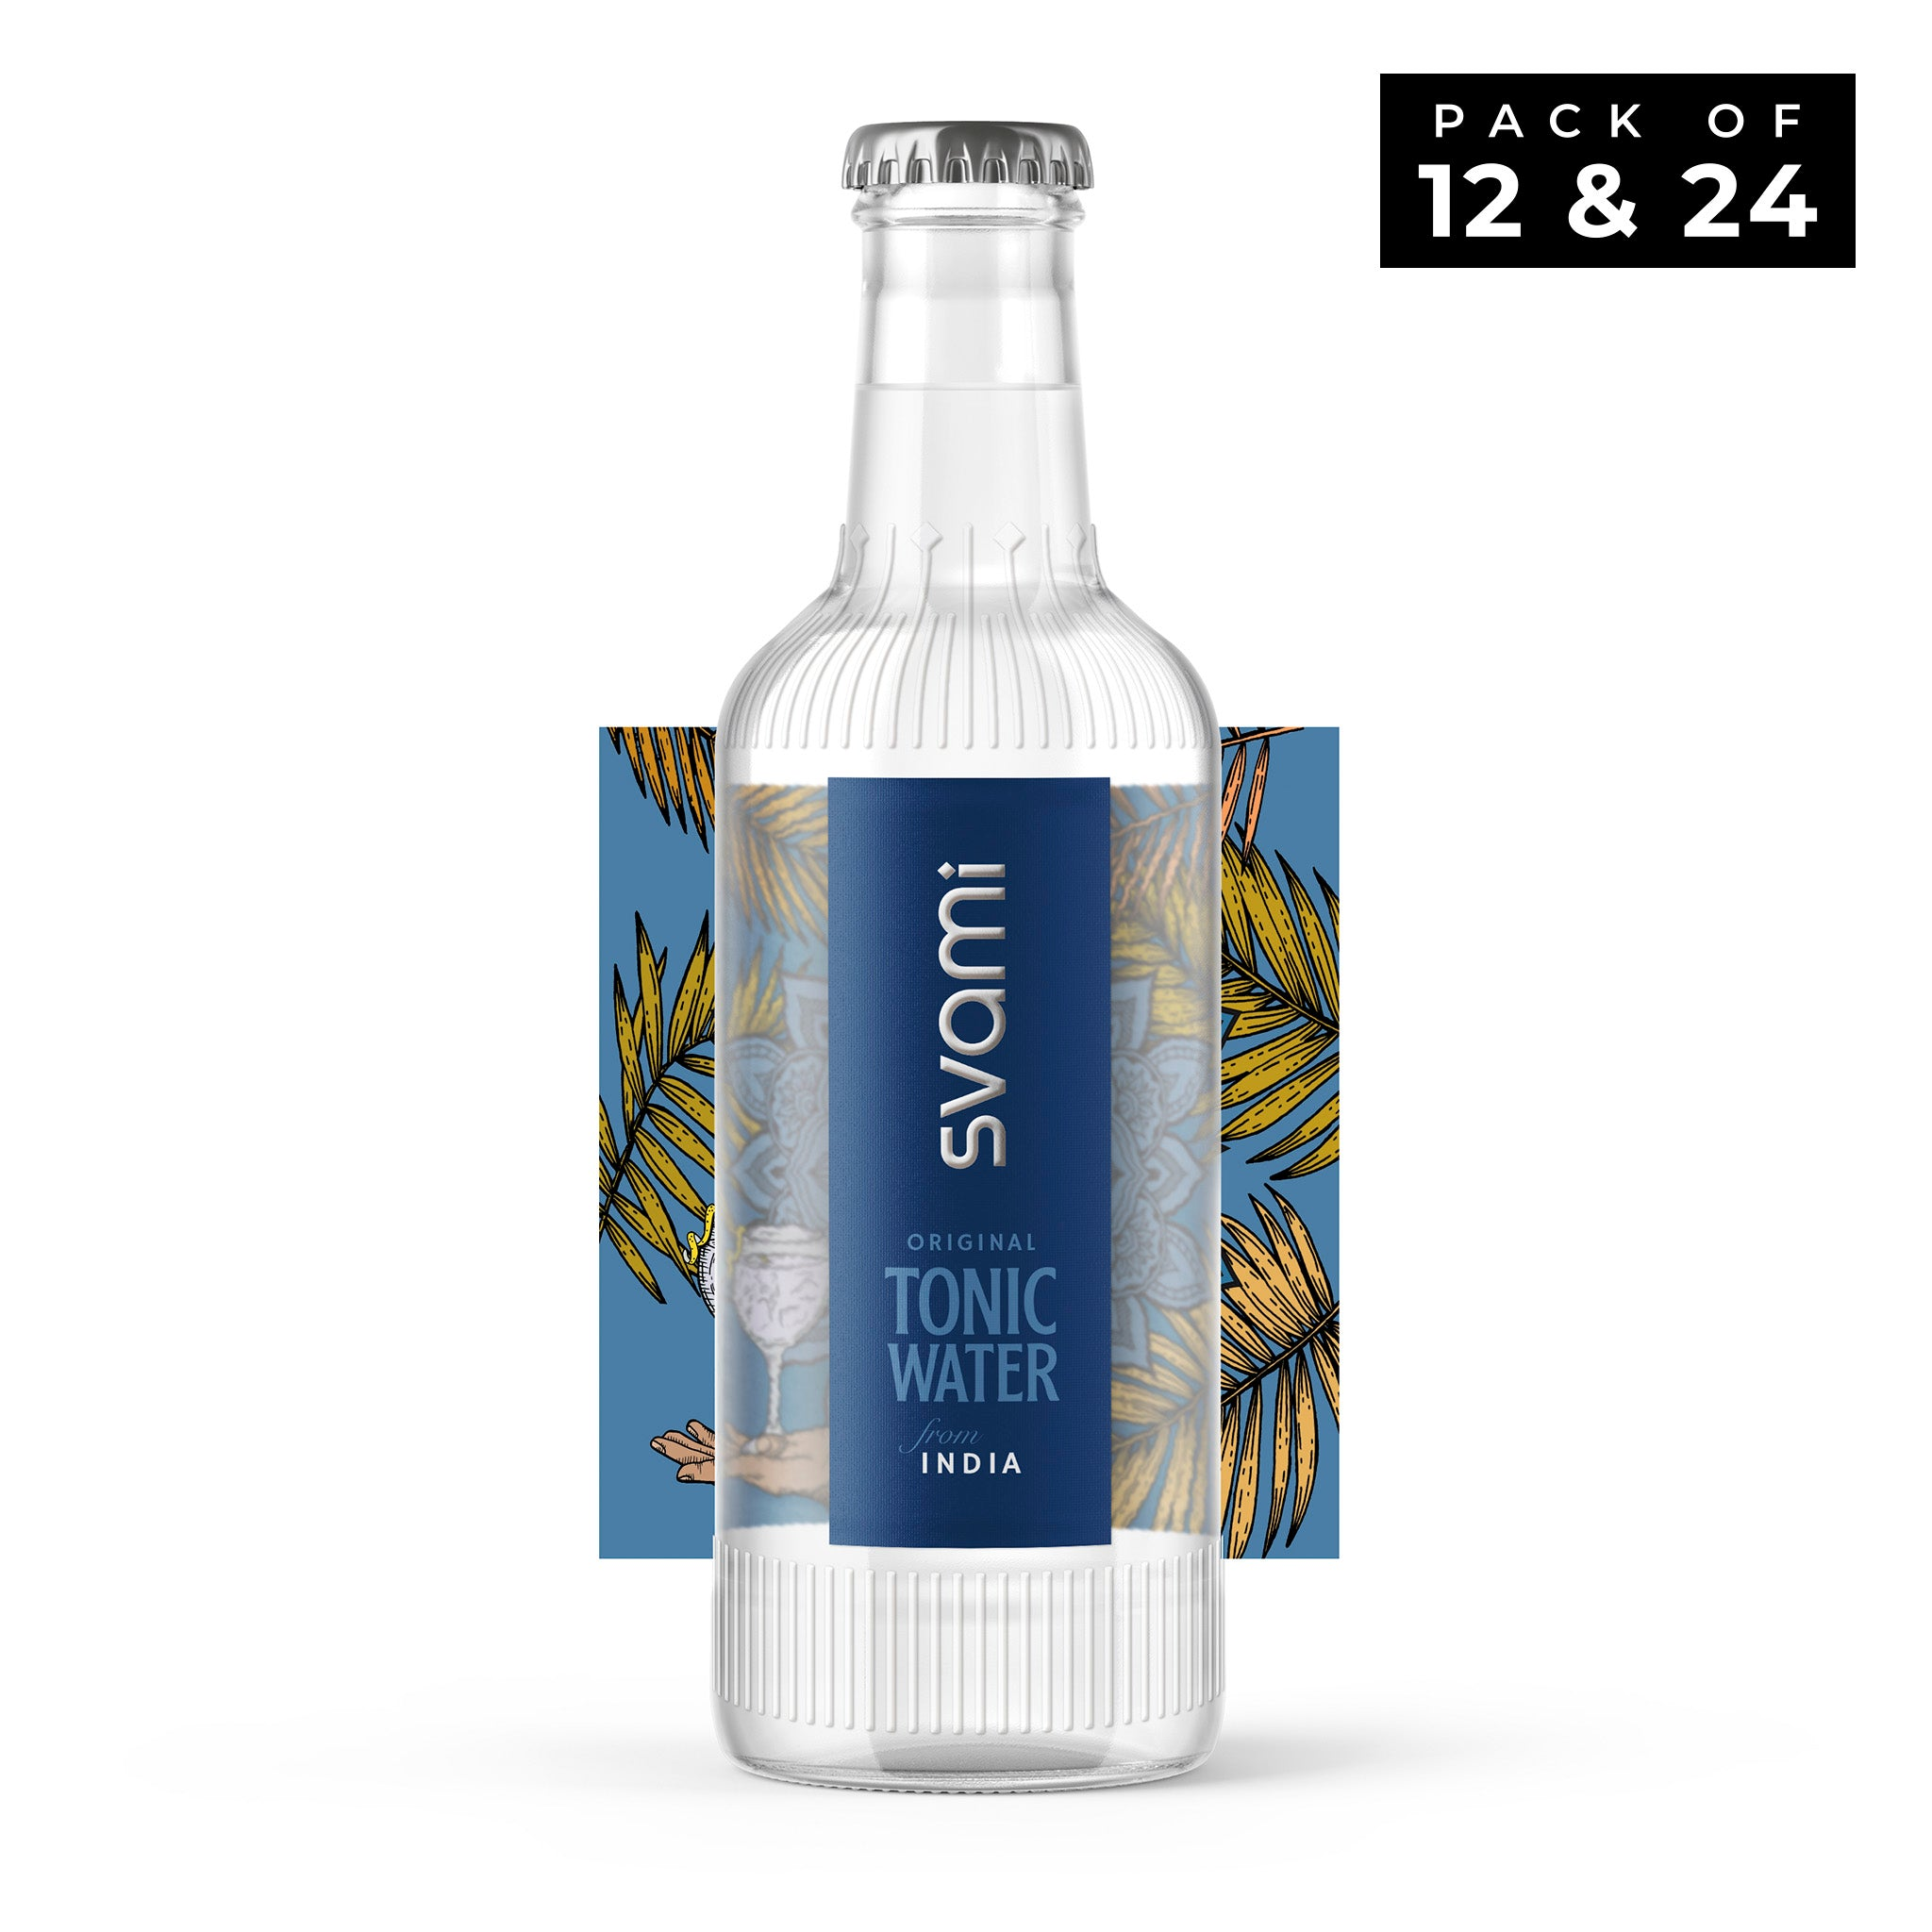 Svami Original Tonic Water